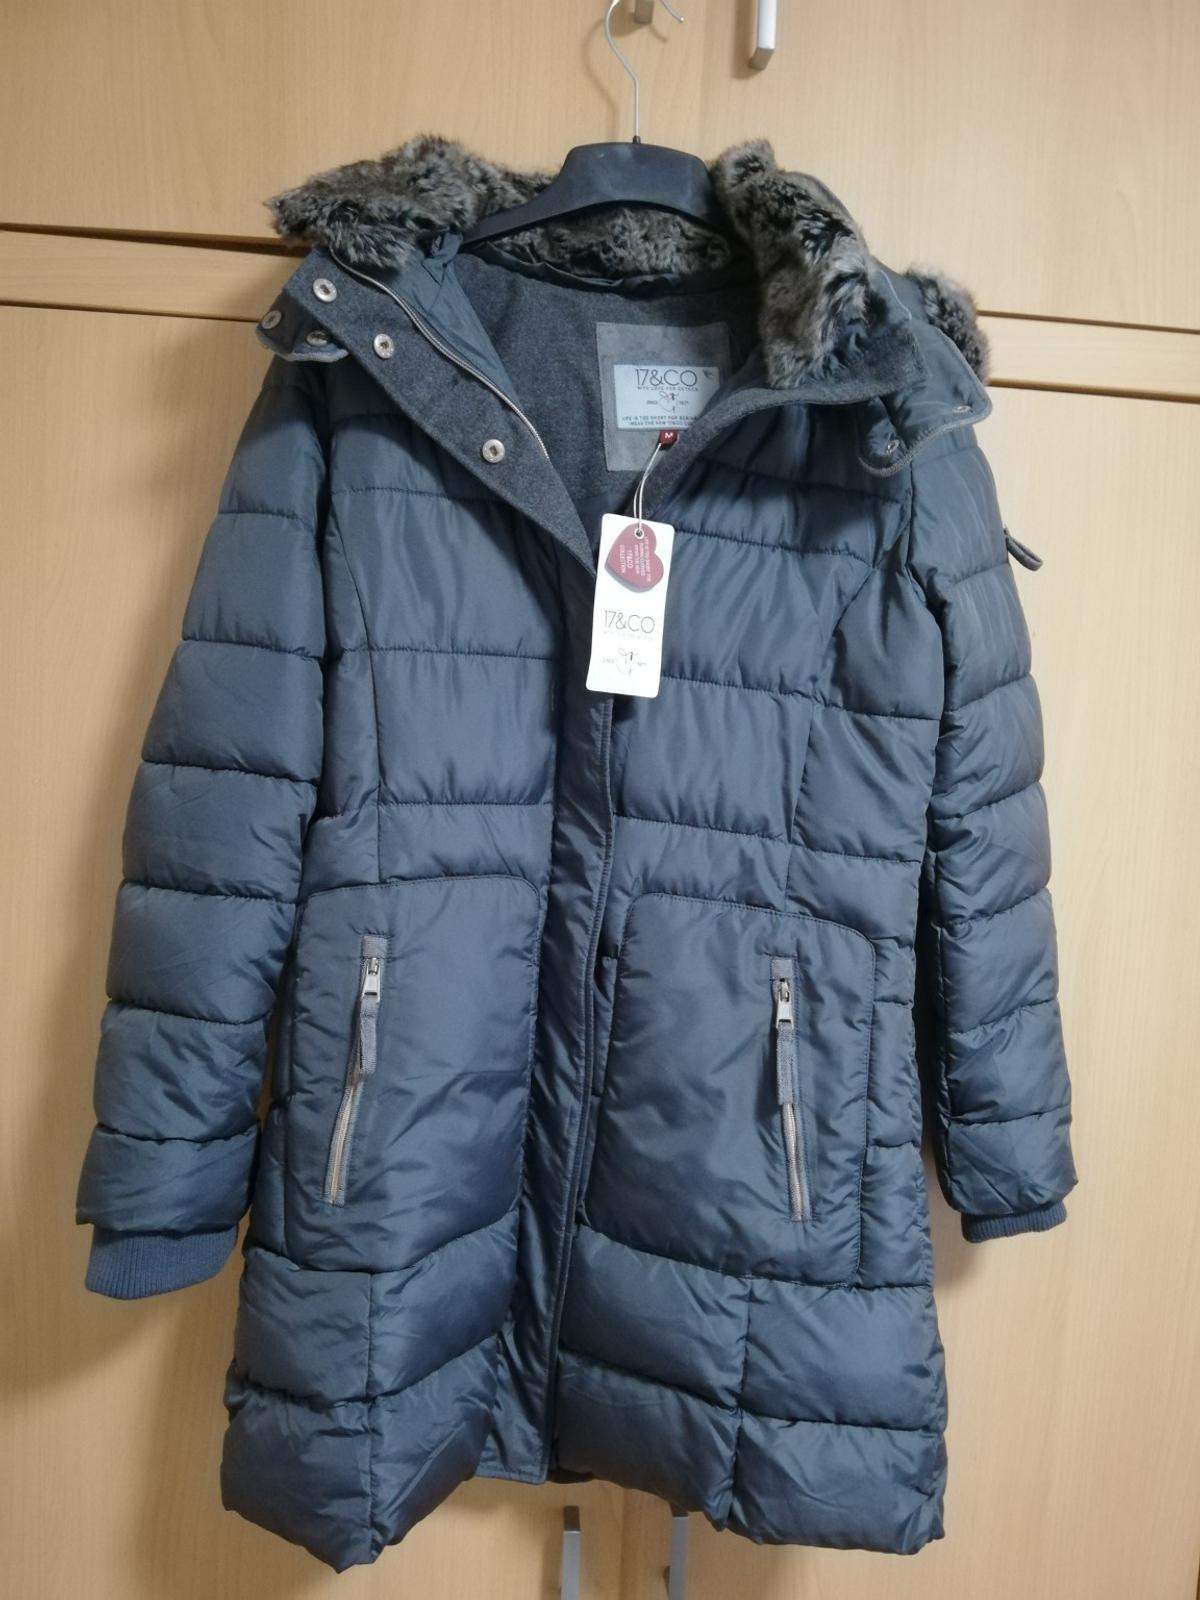 fussl Marken Winter Mantel NEU VP 100Euro in 9020 Klagenfurt